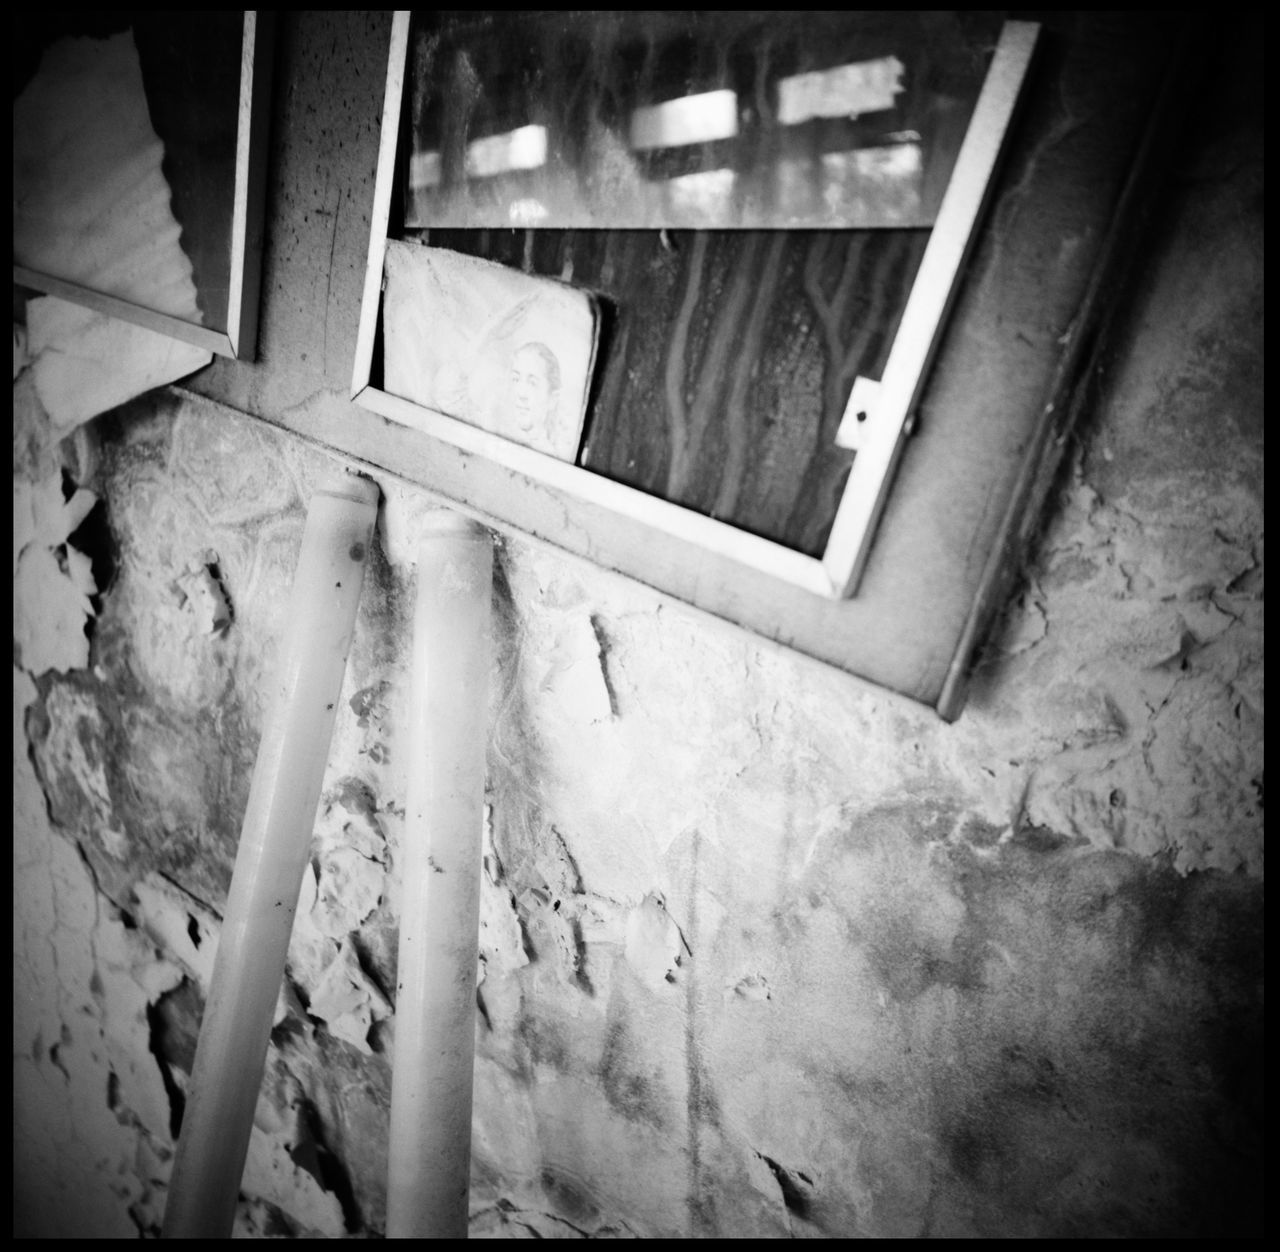 The screaming silence of school No.3 in Pripyat Abandoned School Alfavit Analogue Photography Apocalypse Black And White Chernobyl 1986 Chernobyl Catastrophe Chernobyl Exclusion Zone Cyrillic Disaster Film Evacuation Indoors  No People Nuclear Disaster Oktjabr Pripyat Pripyat School Russian Alphabet School School No.3 Soviet School Soviet Union Television Travel The Photojournalist - 2017 EyeEm Awards